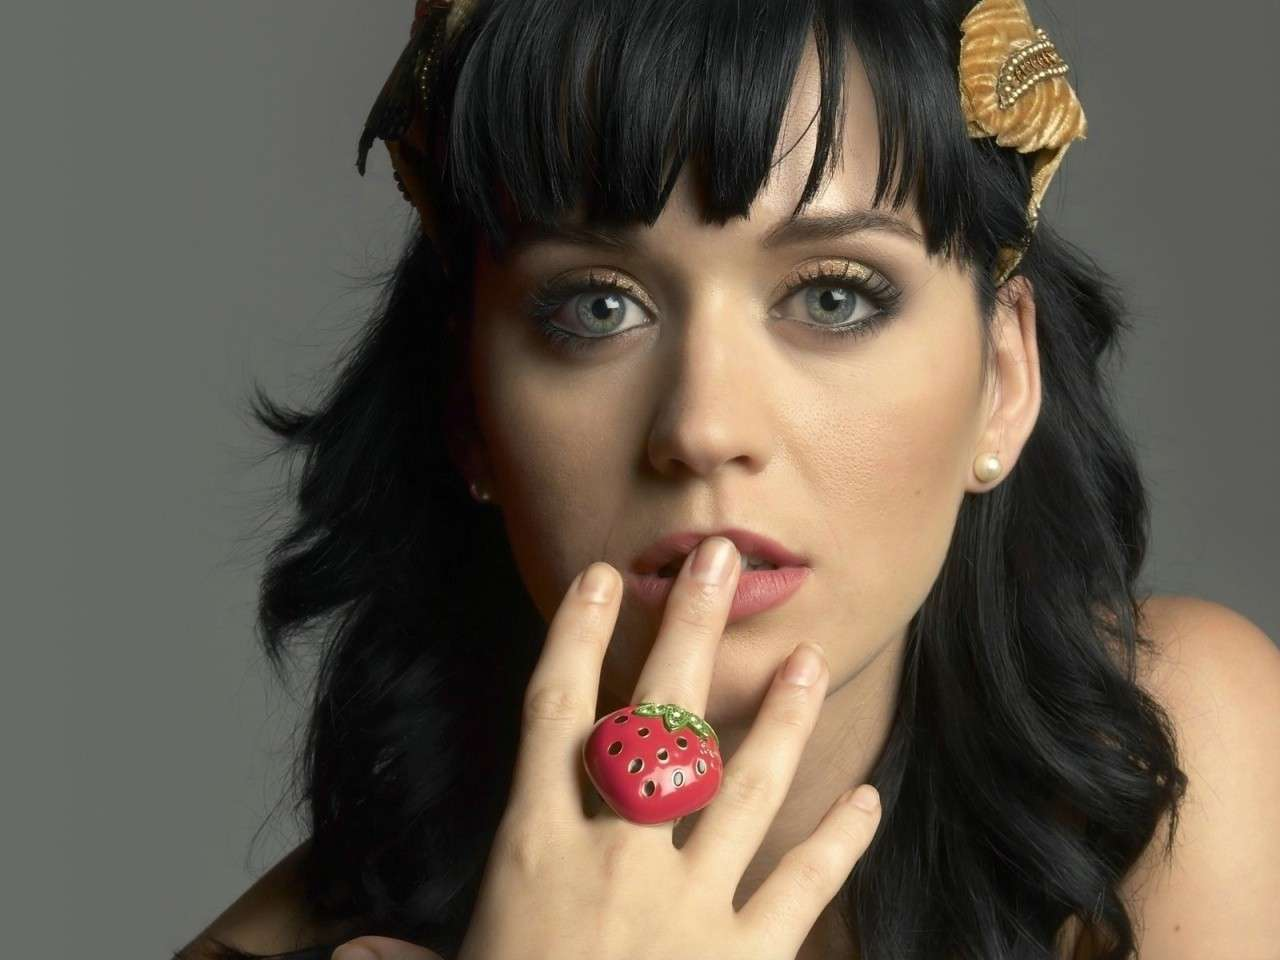 Un makeup semplice di Katy Perry